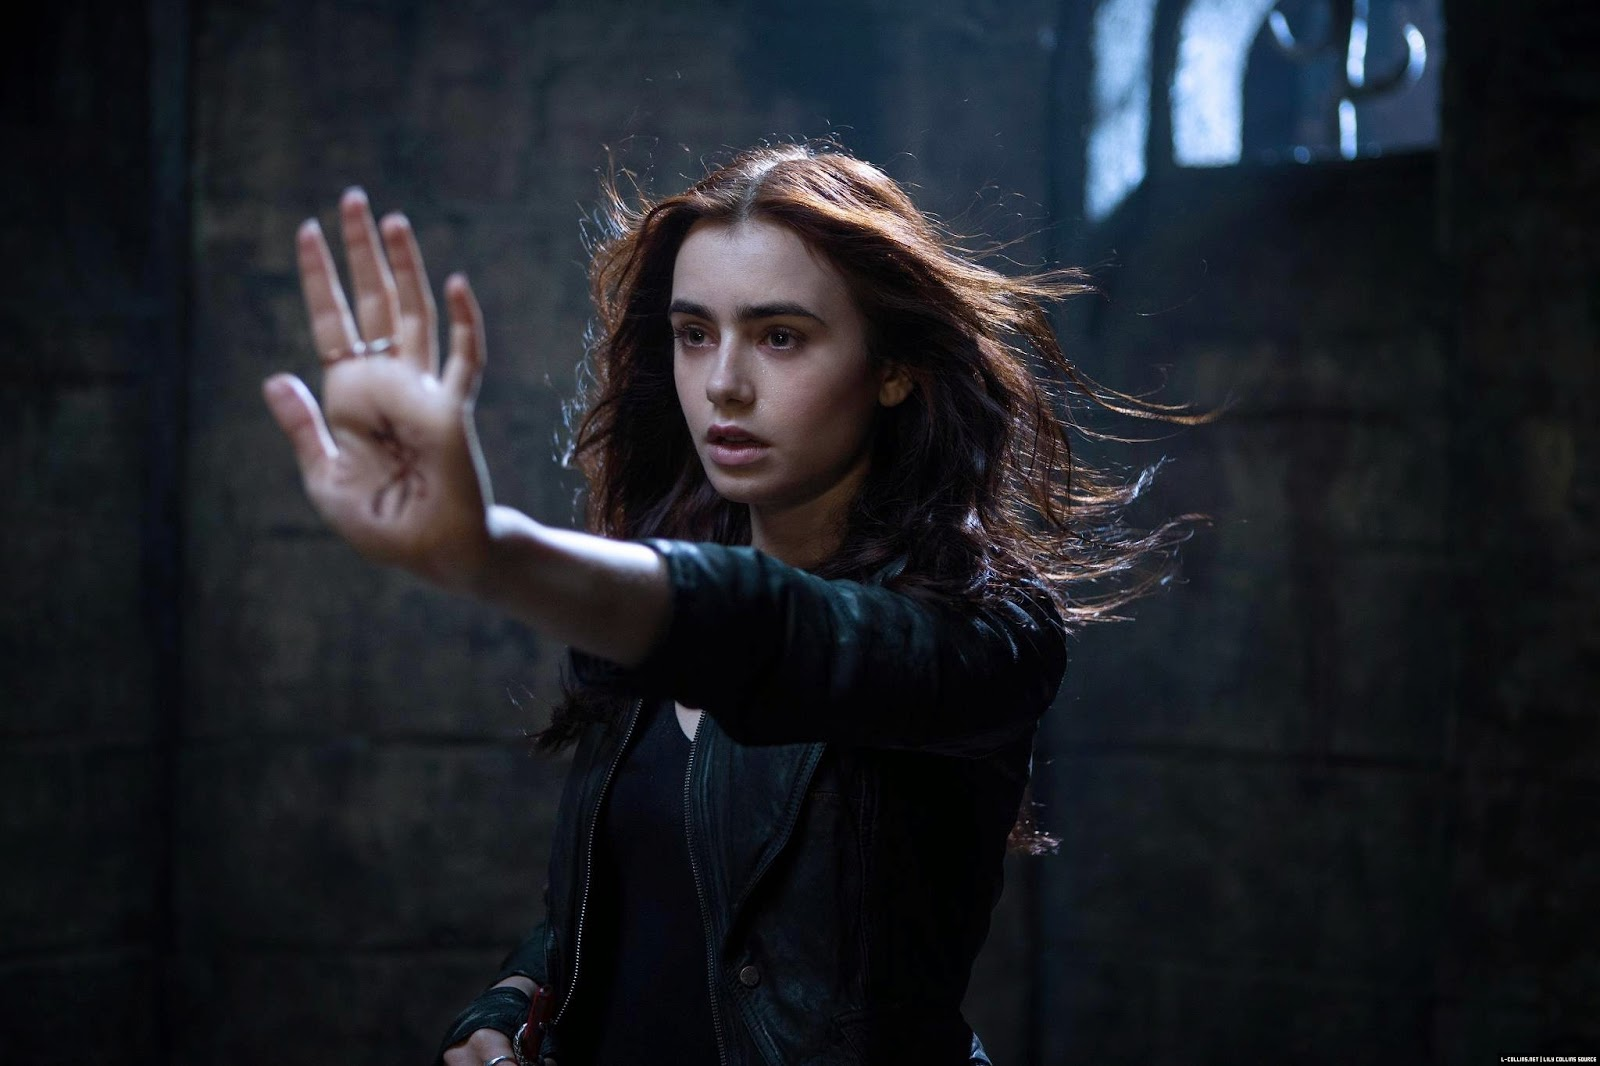 'THE MORTAL INSTRUMENTS: CITY OF BONES' (2013). A girl learns she has unusual origins in this adaptation of the Cassandra Clare novel. Text © Rissi JC